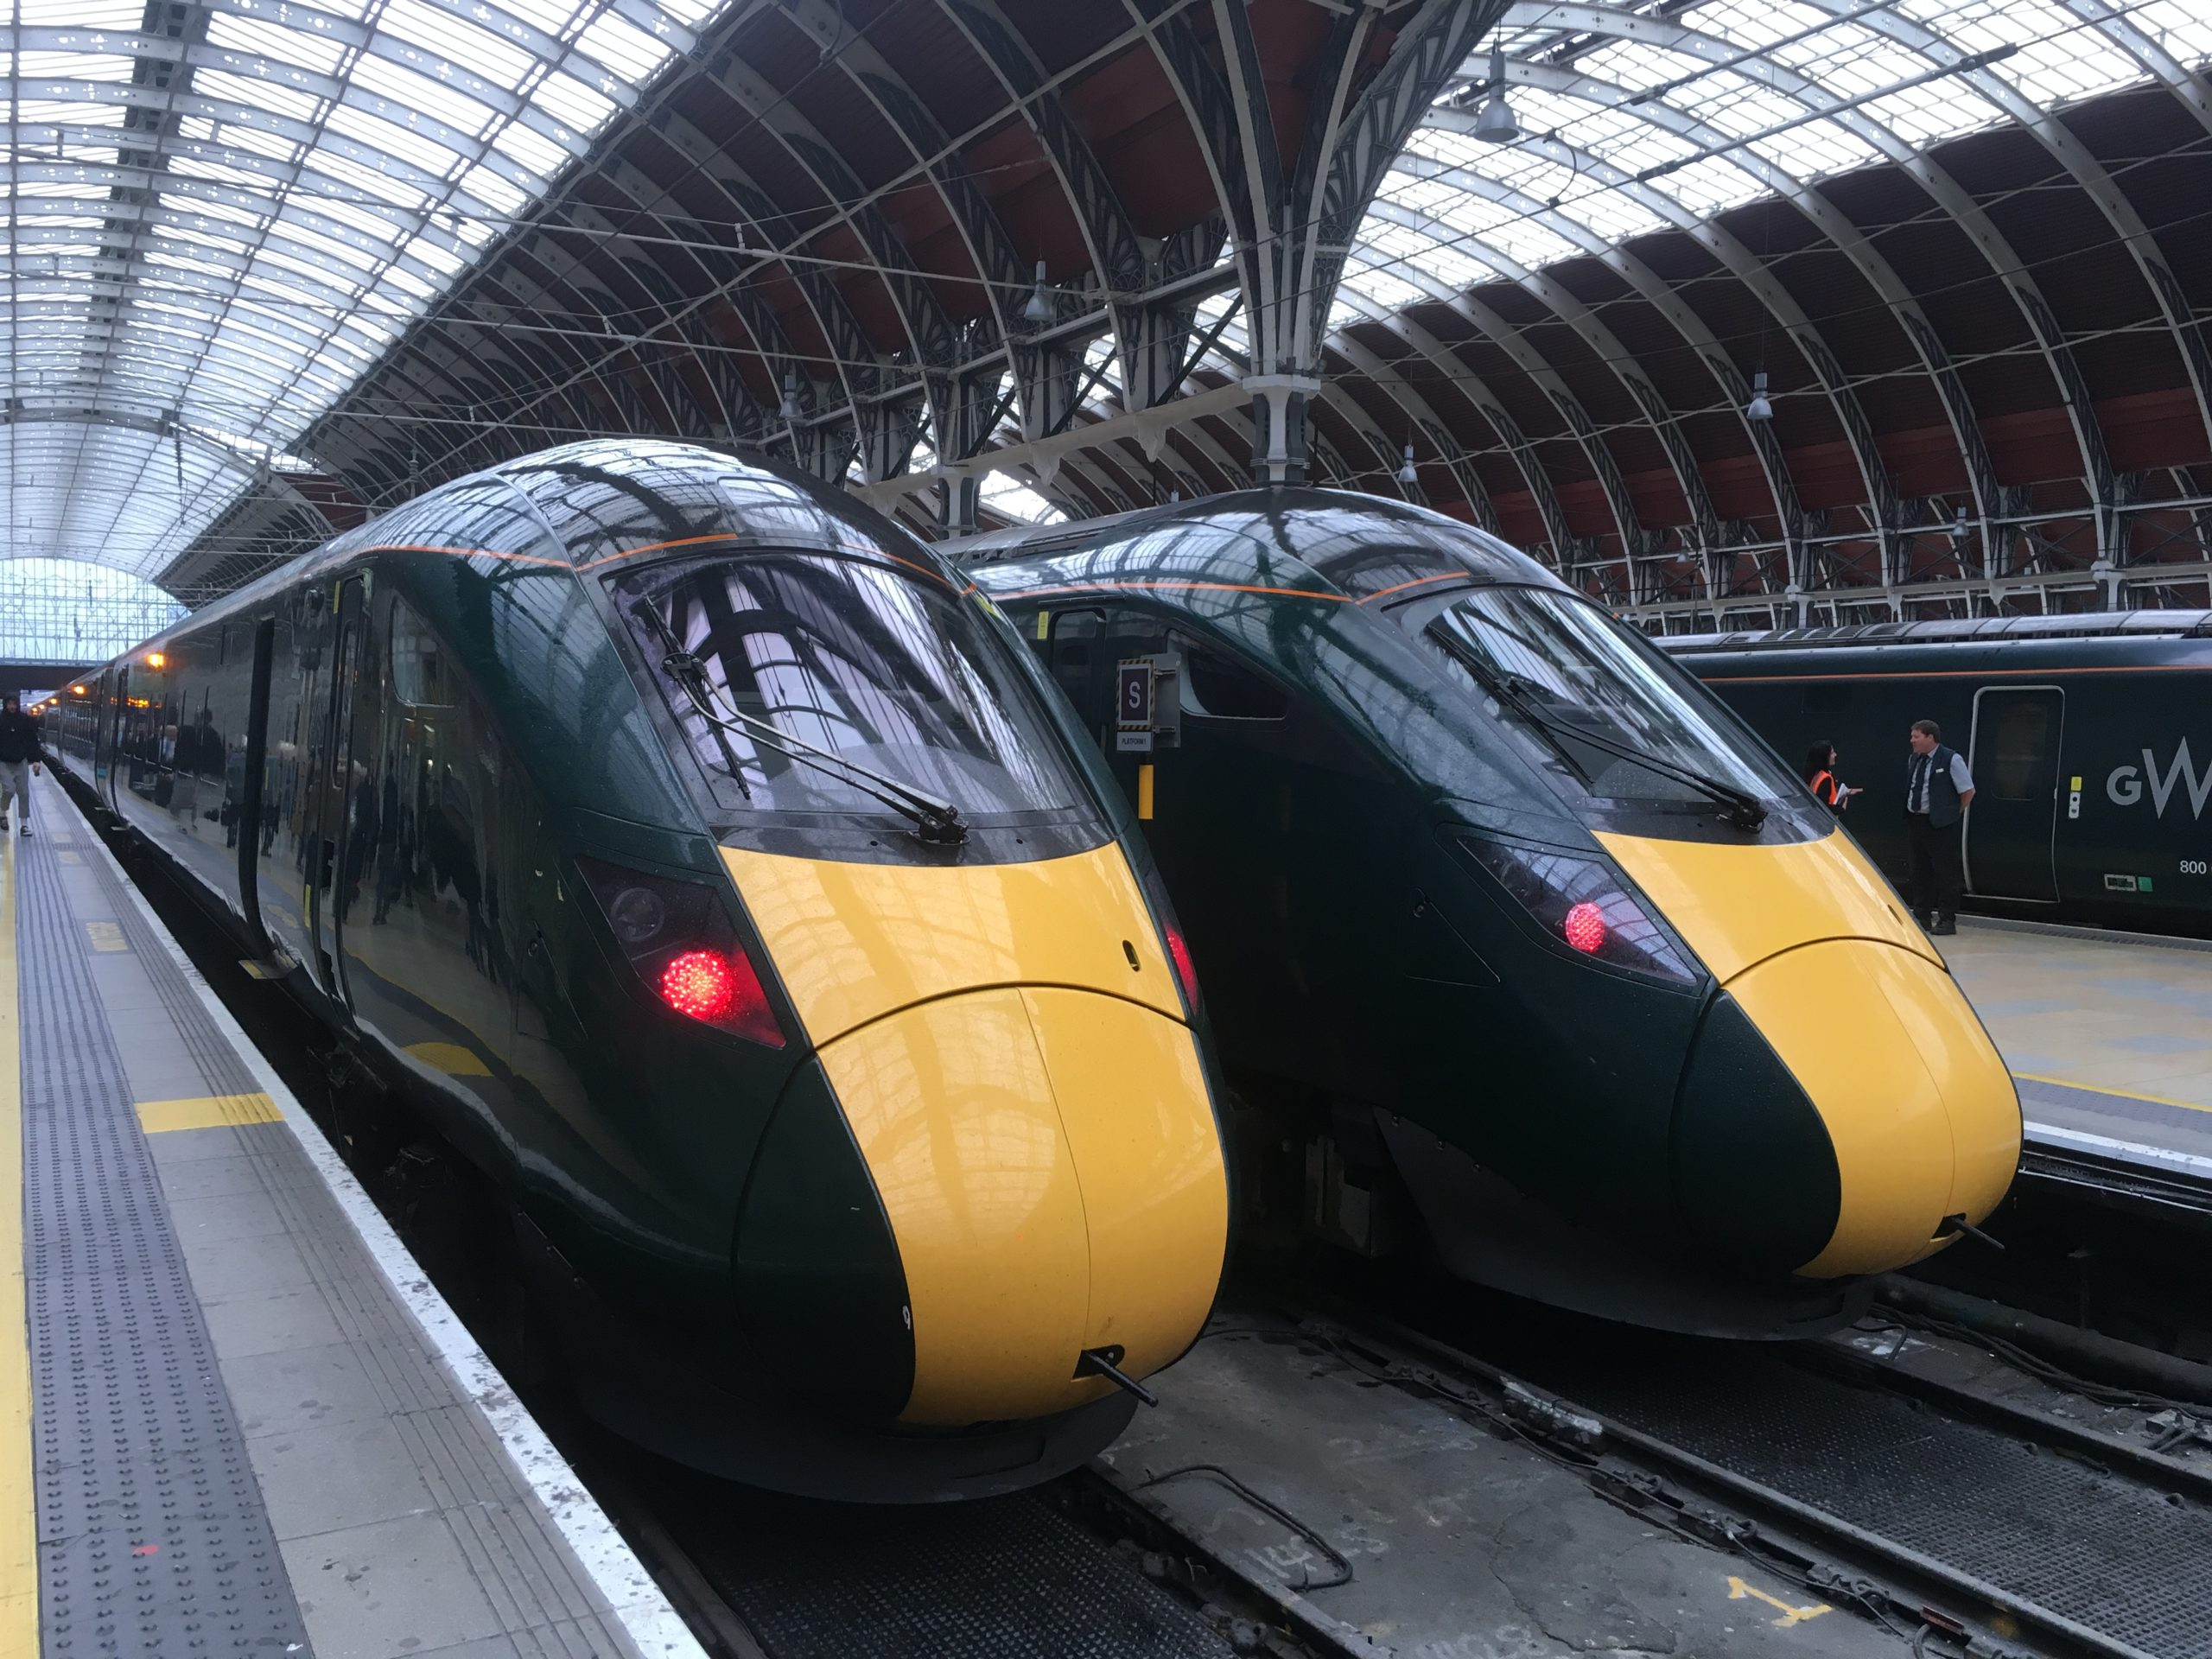 GWR trains in London